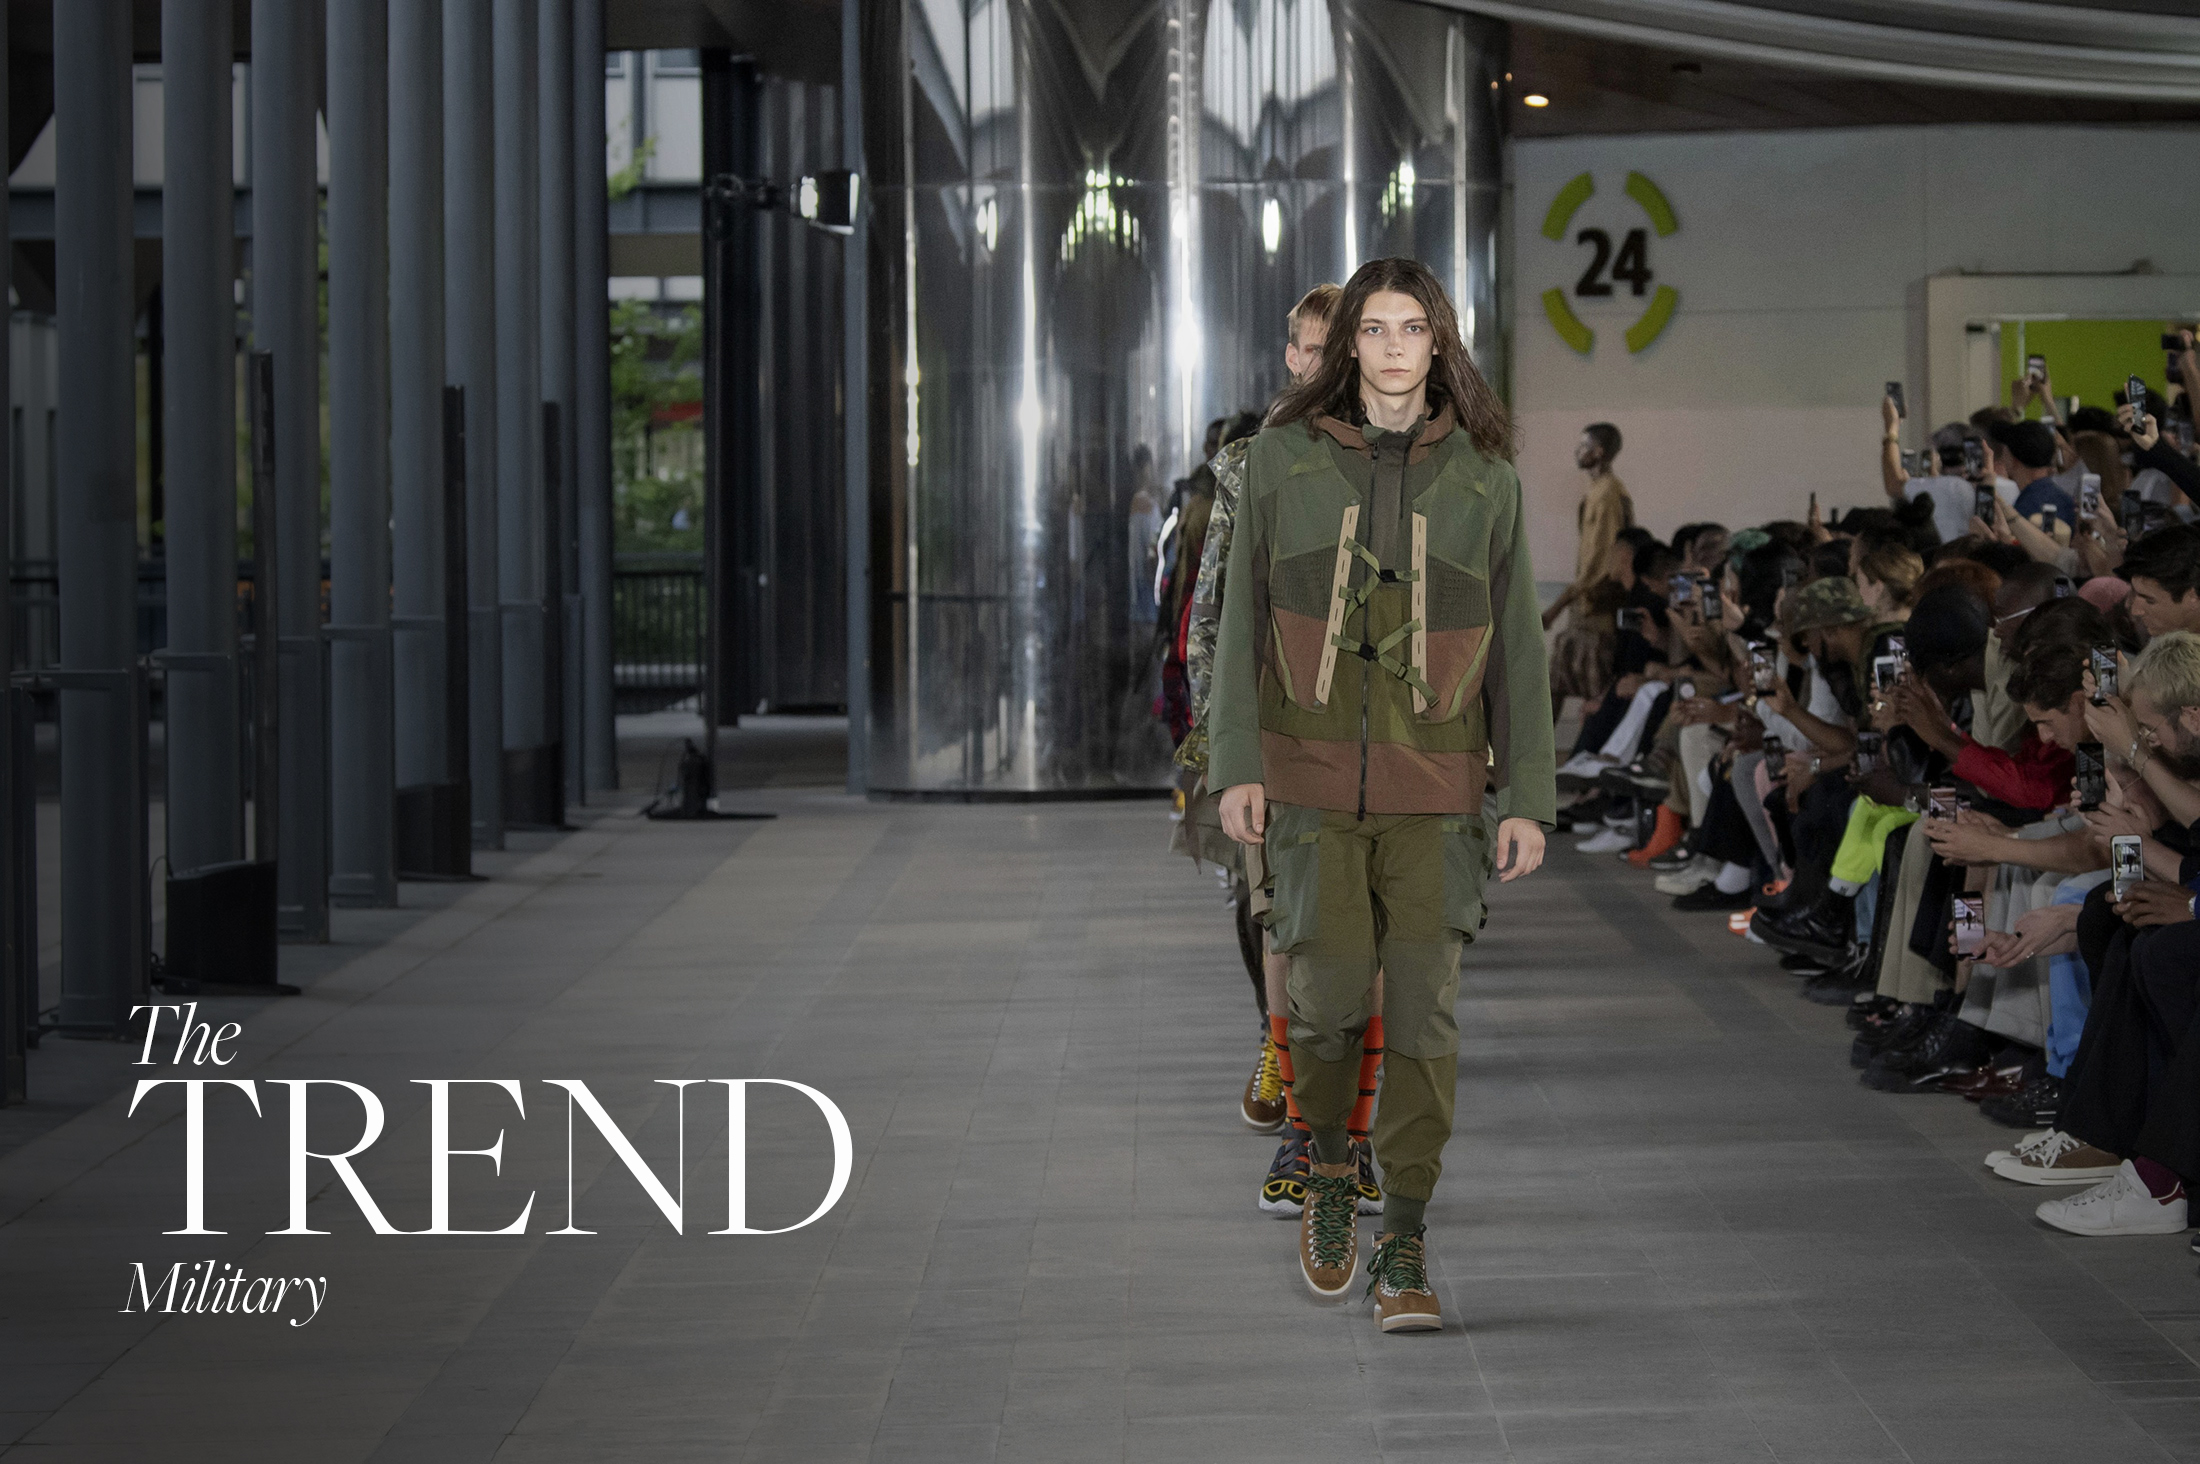 MILITARY SPRING 2020 MENSWEAR TREND